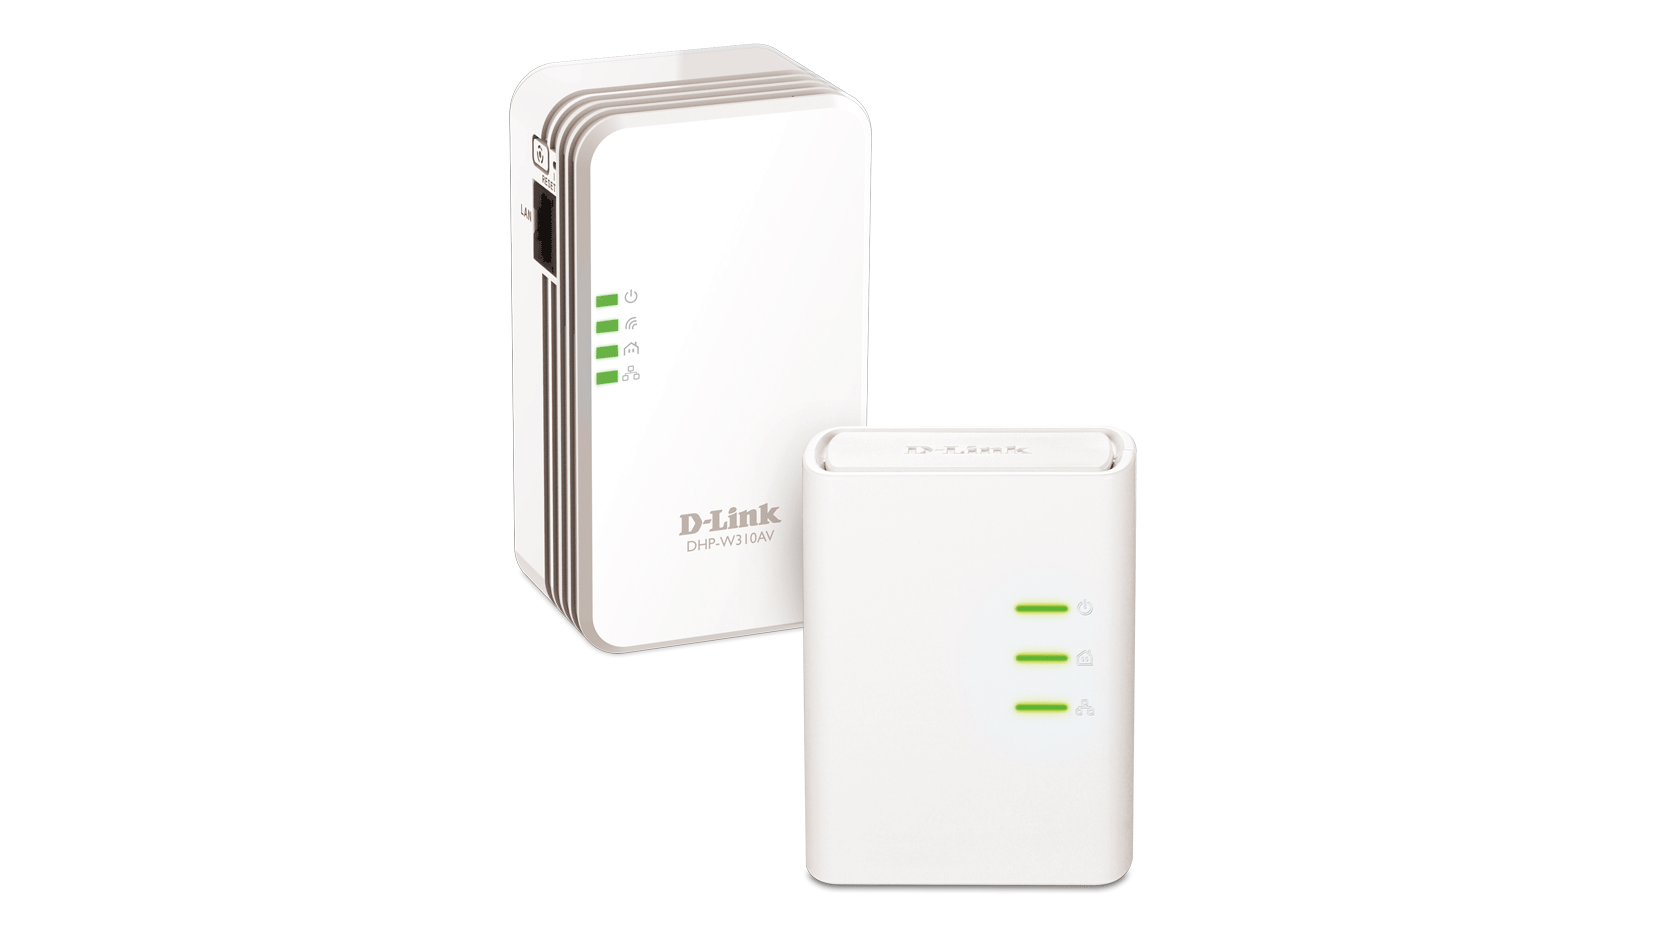 D Link Powerline Av Wireless Extender Kit